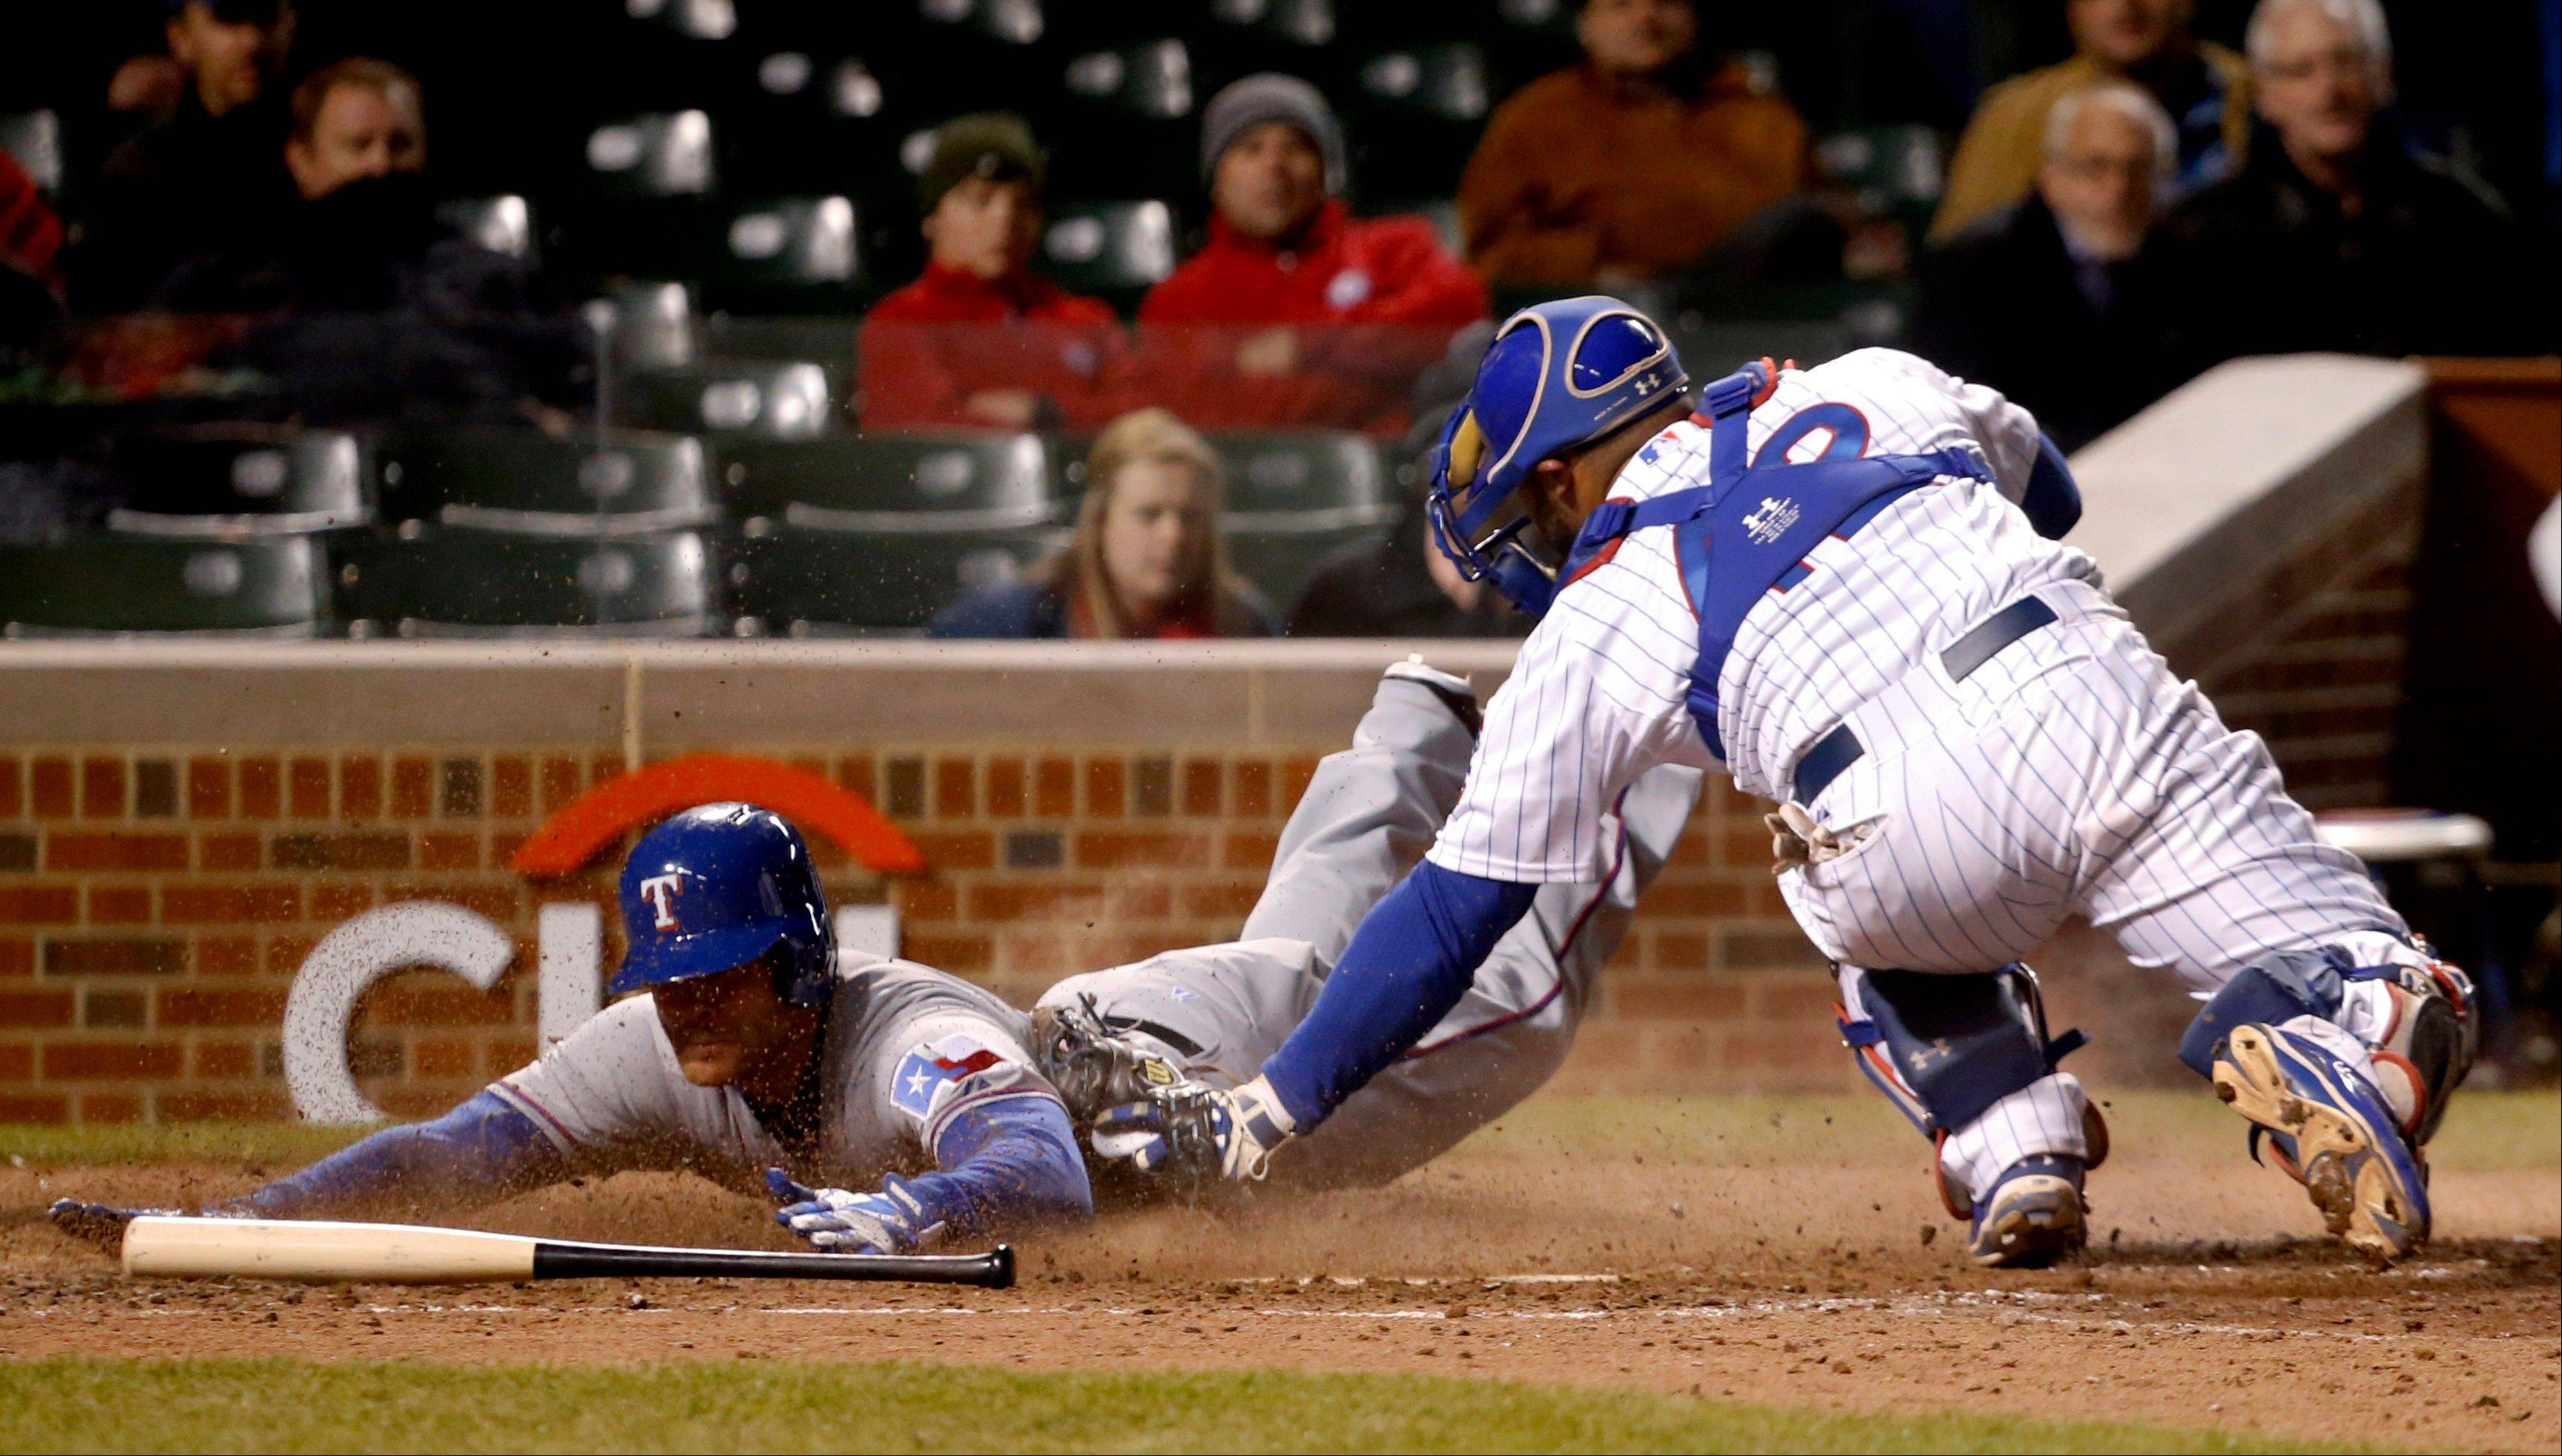 Chicago Cubs catcher Welington Castillo, right, tags out Texas Rangers' Craig Gentry at home on a throw from first baseman Anthony Rizzo during the ninth inning of a interleague baseball game, Tuesday, April 16 2013, in Chicago.